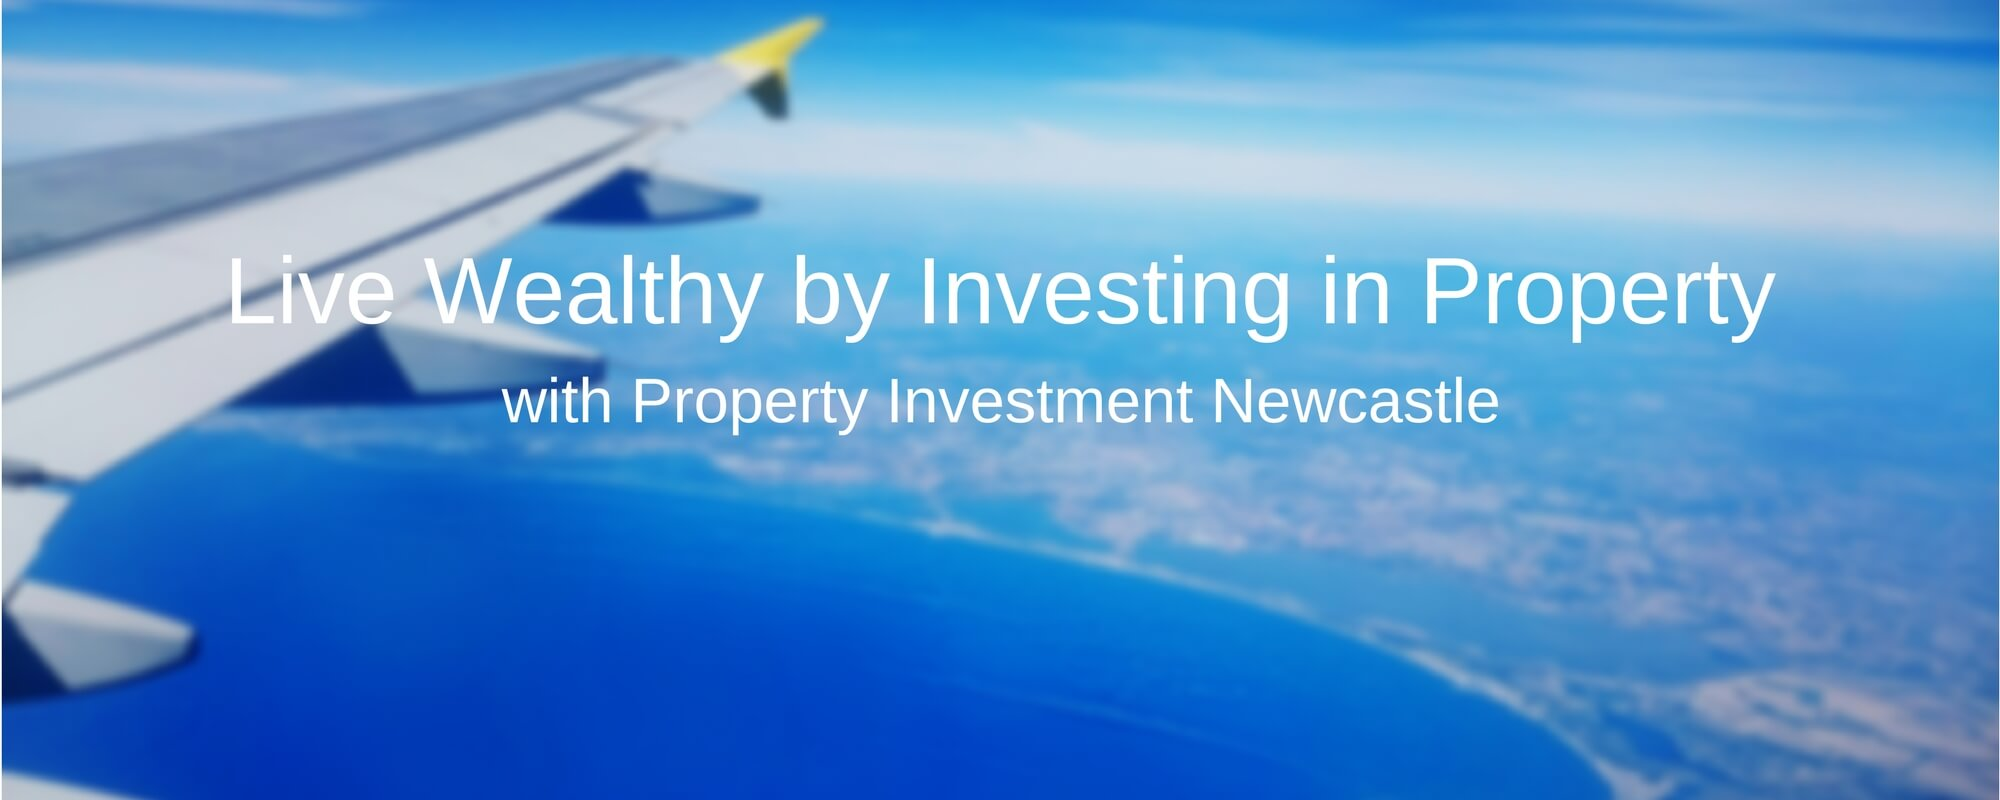 Property Investment Newcastle Banner 3